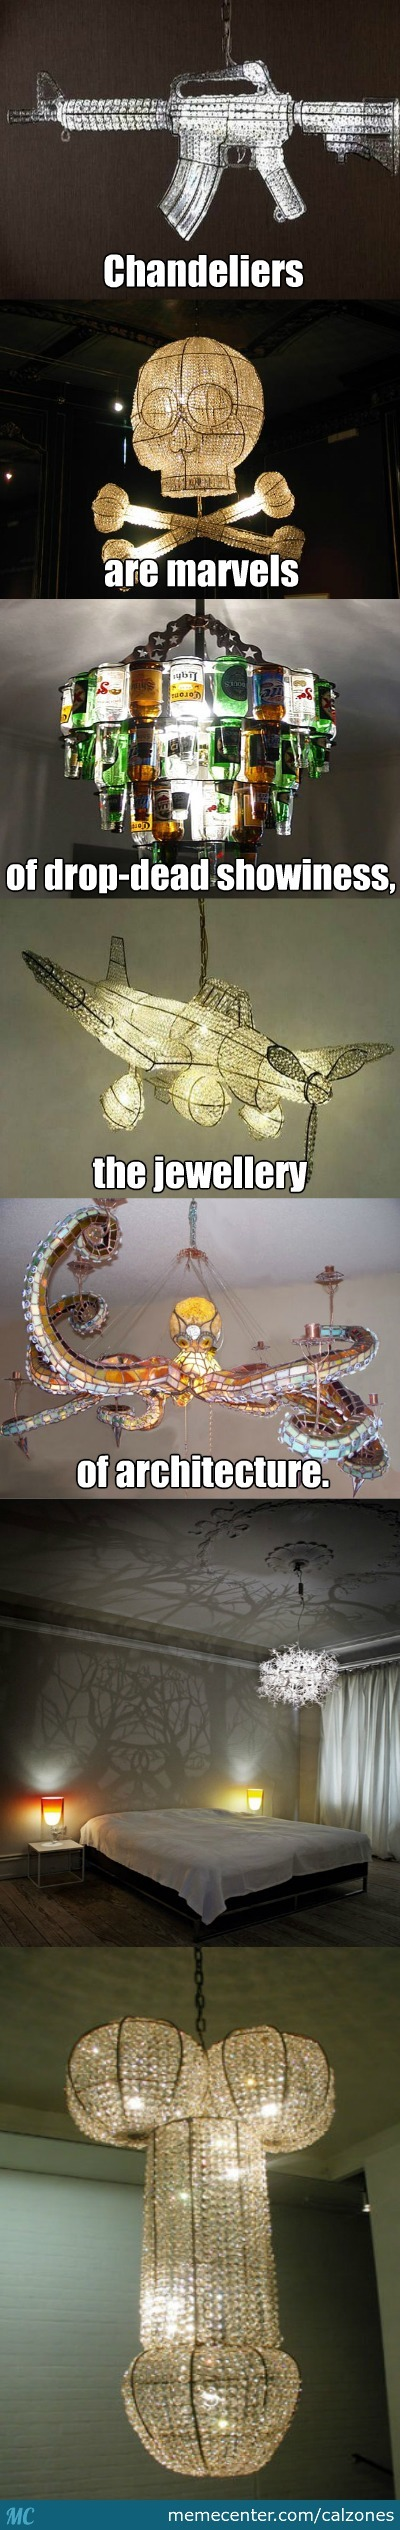 I Wouldn't Be Able To Sleep With A Chandelier Looming Over My Bed. I'm A Light Sleeper.